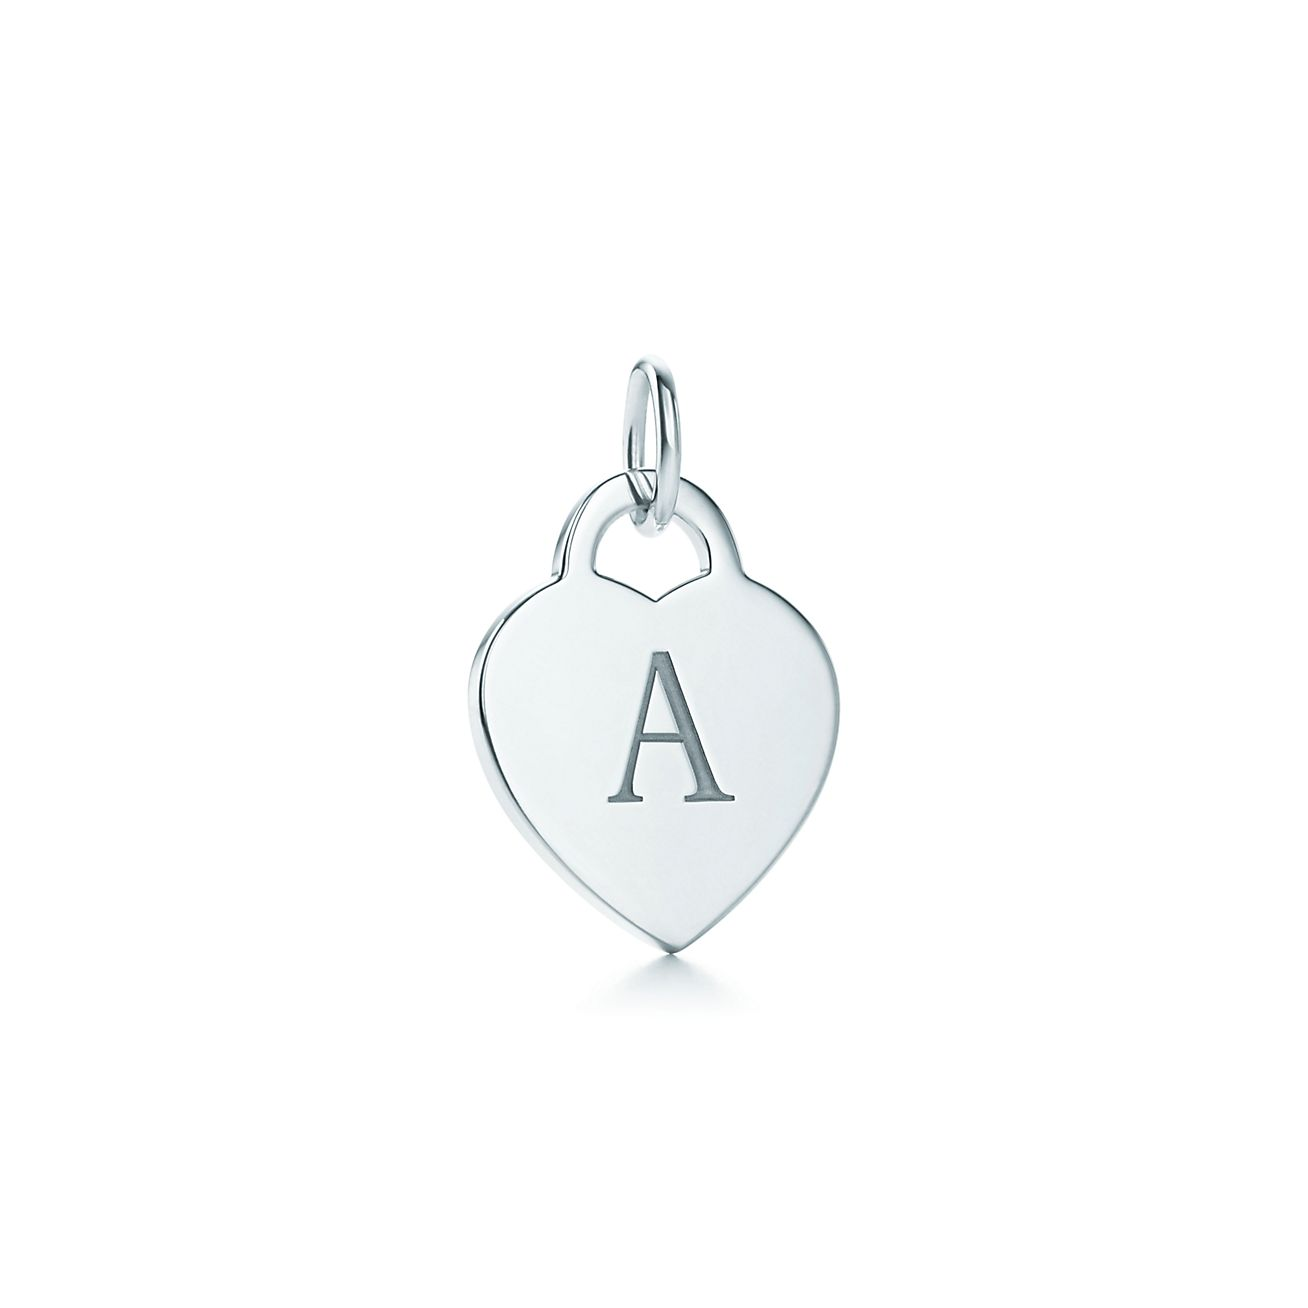 Tiffany Charms alphabet charm in sterling silver Letters A-Z available - Size B Tiffany & Co.